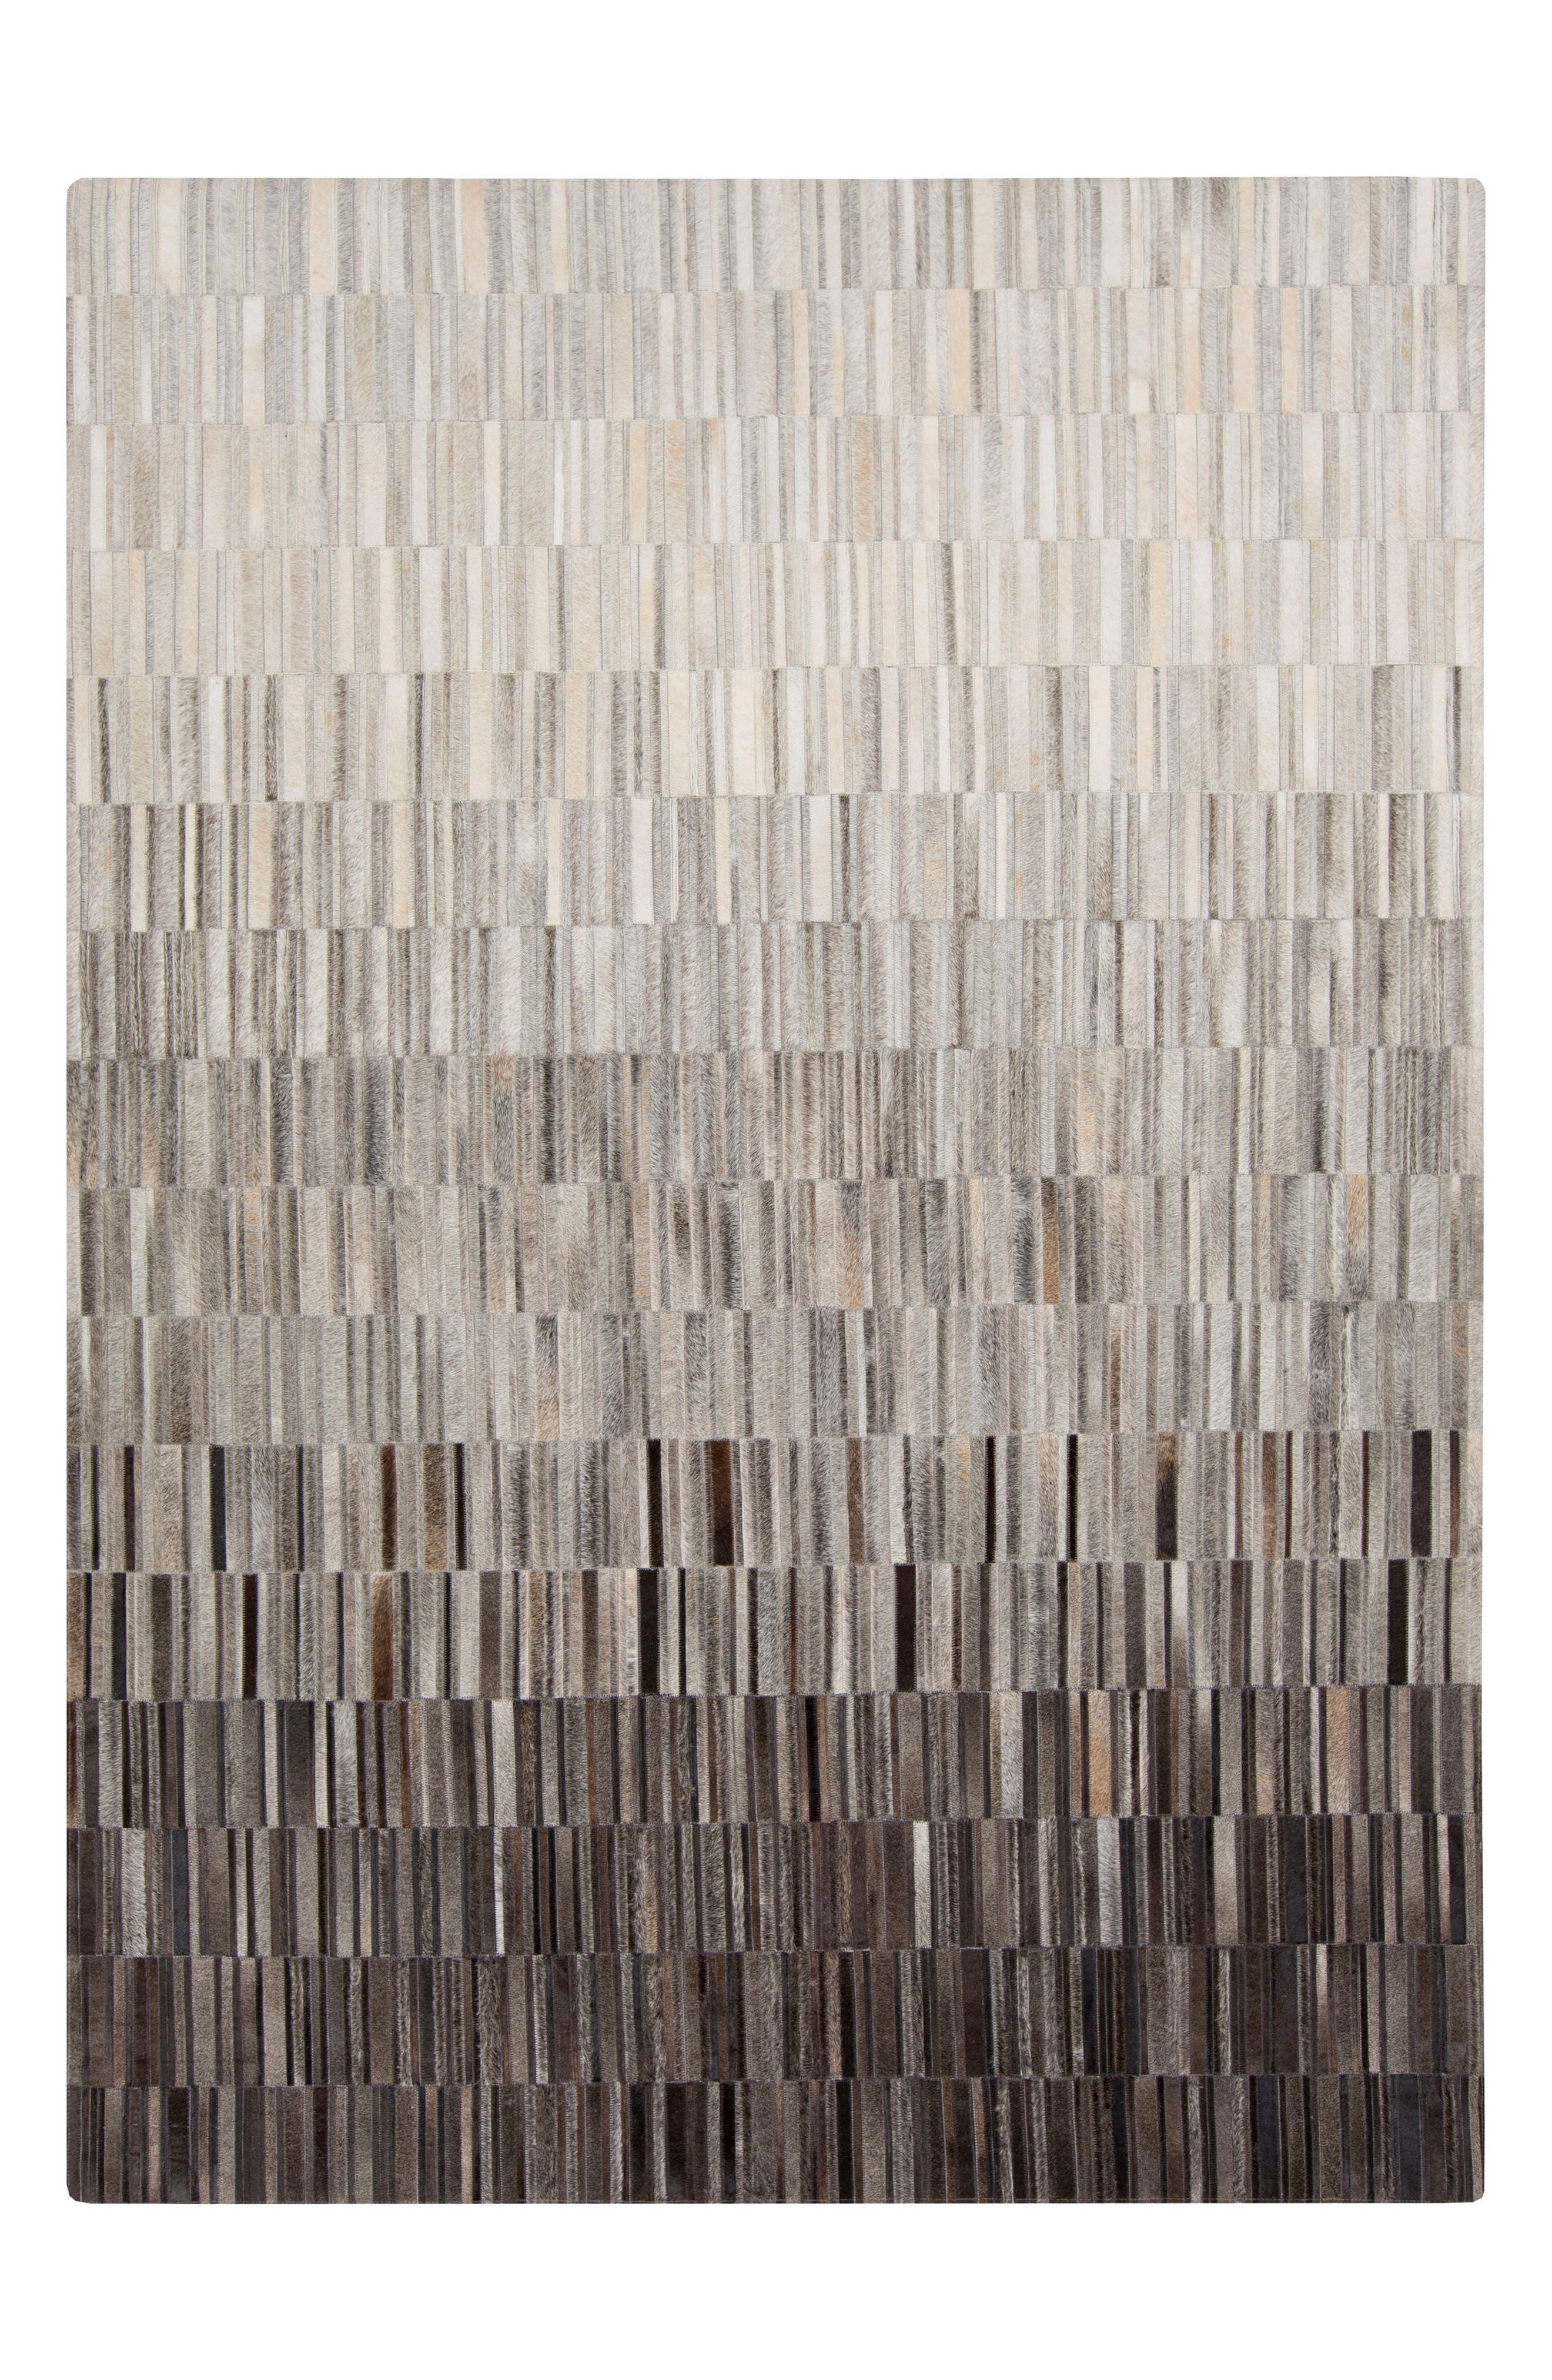 Outback Dégradé Genuine Calf Hair Rug,                         Main,                         color, 001